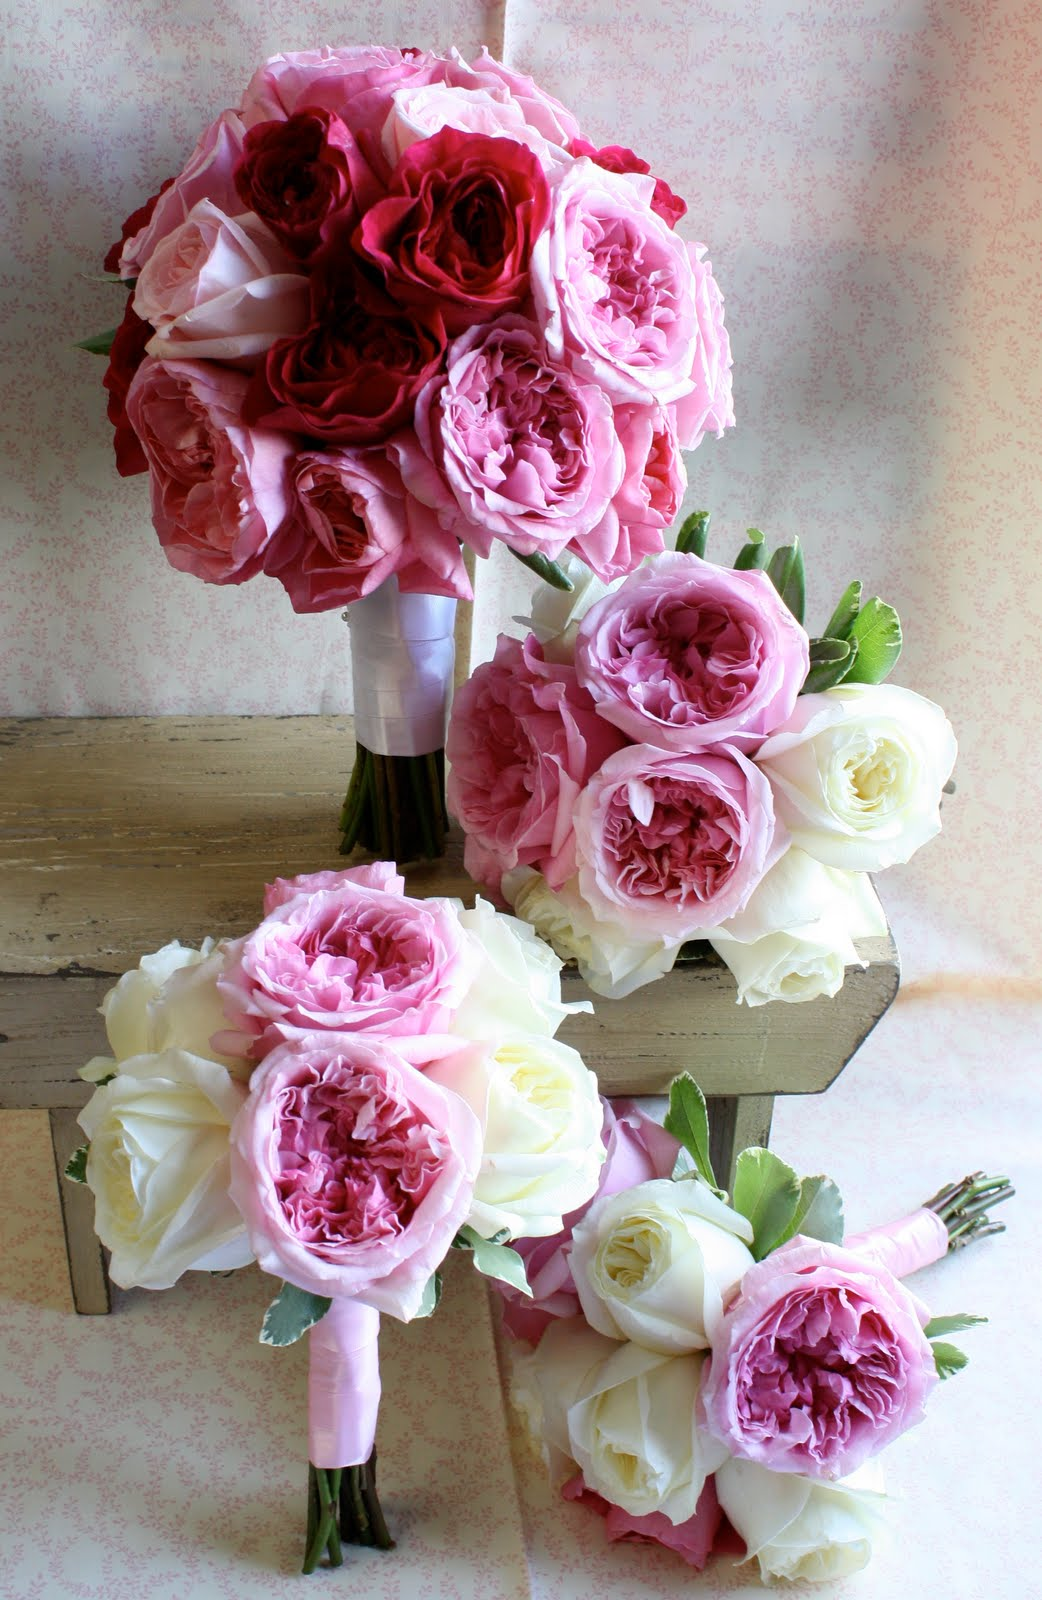 Bella fiori designs flowers for weddings in washington seattle everett flower inspiration - Garden rose bouquet ...